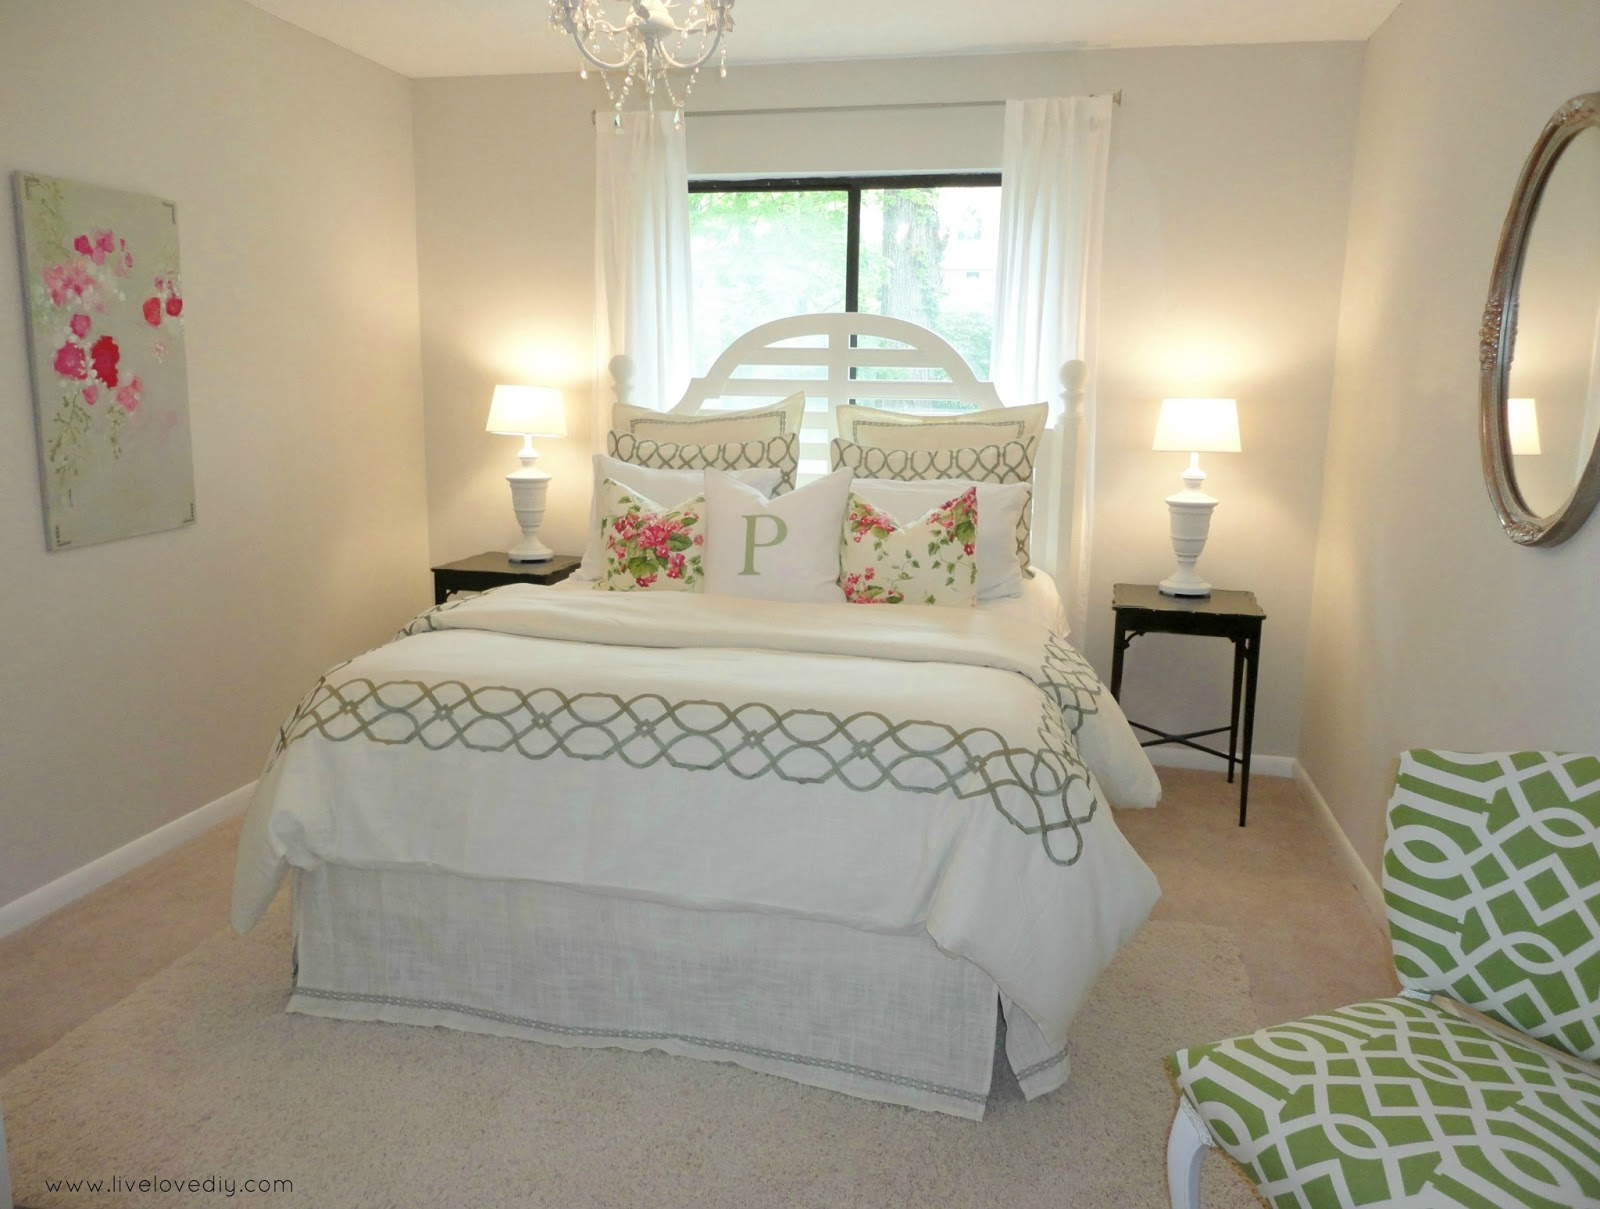 decorating bedrooms with secondhand finds the guest bedroom reveal - Guest Bedroom Decor Ideas